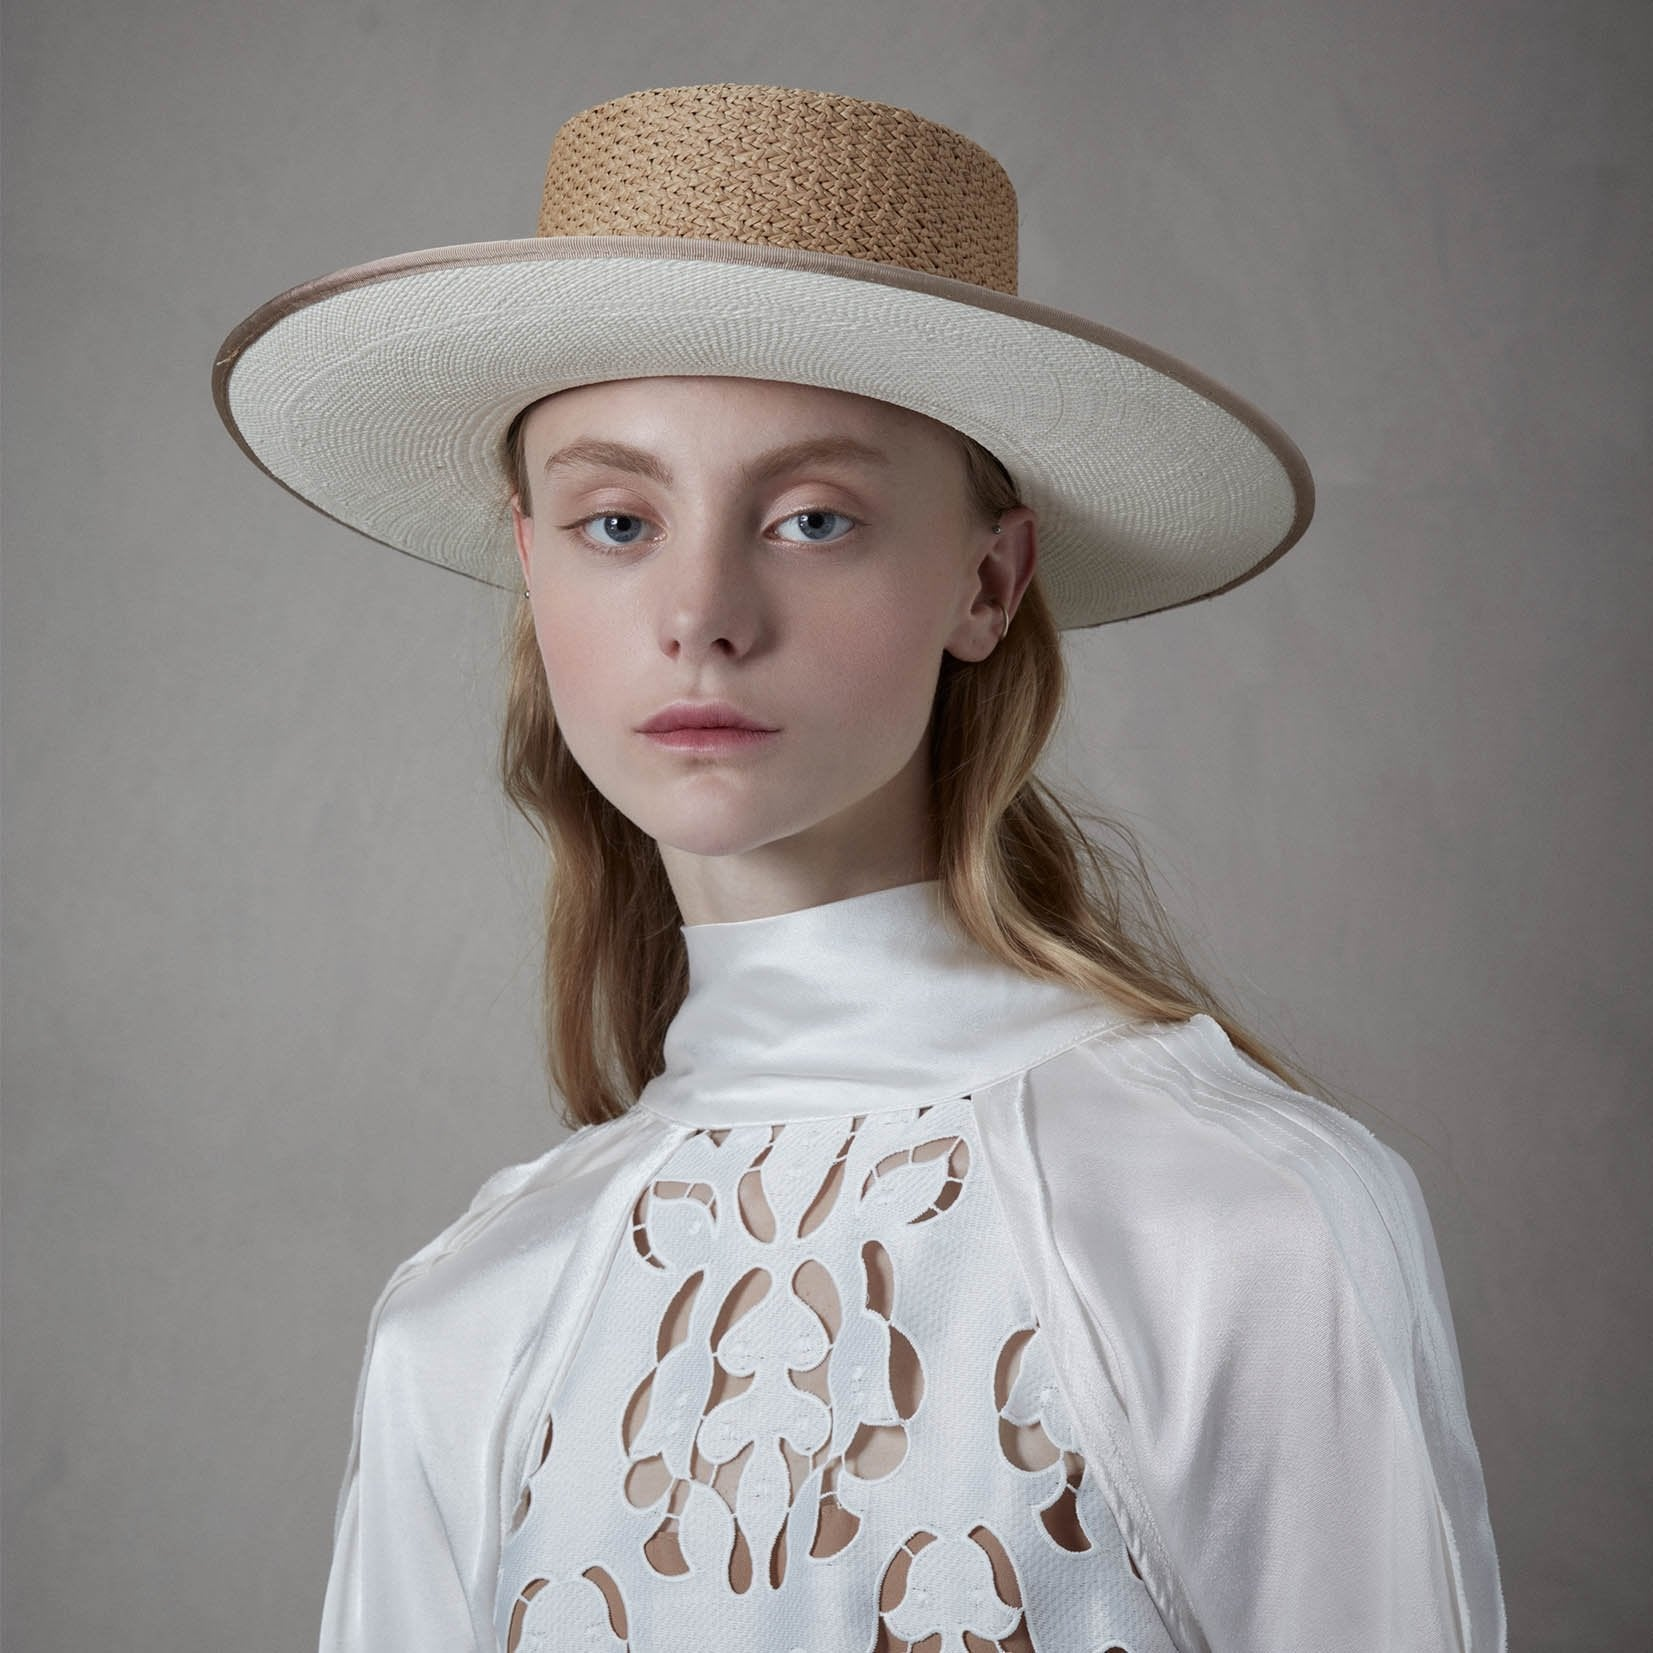 A Day Out - Panamas, Straw and Sun Hats for Women - Lock & Co. Hatters London UK